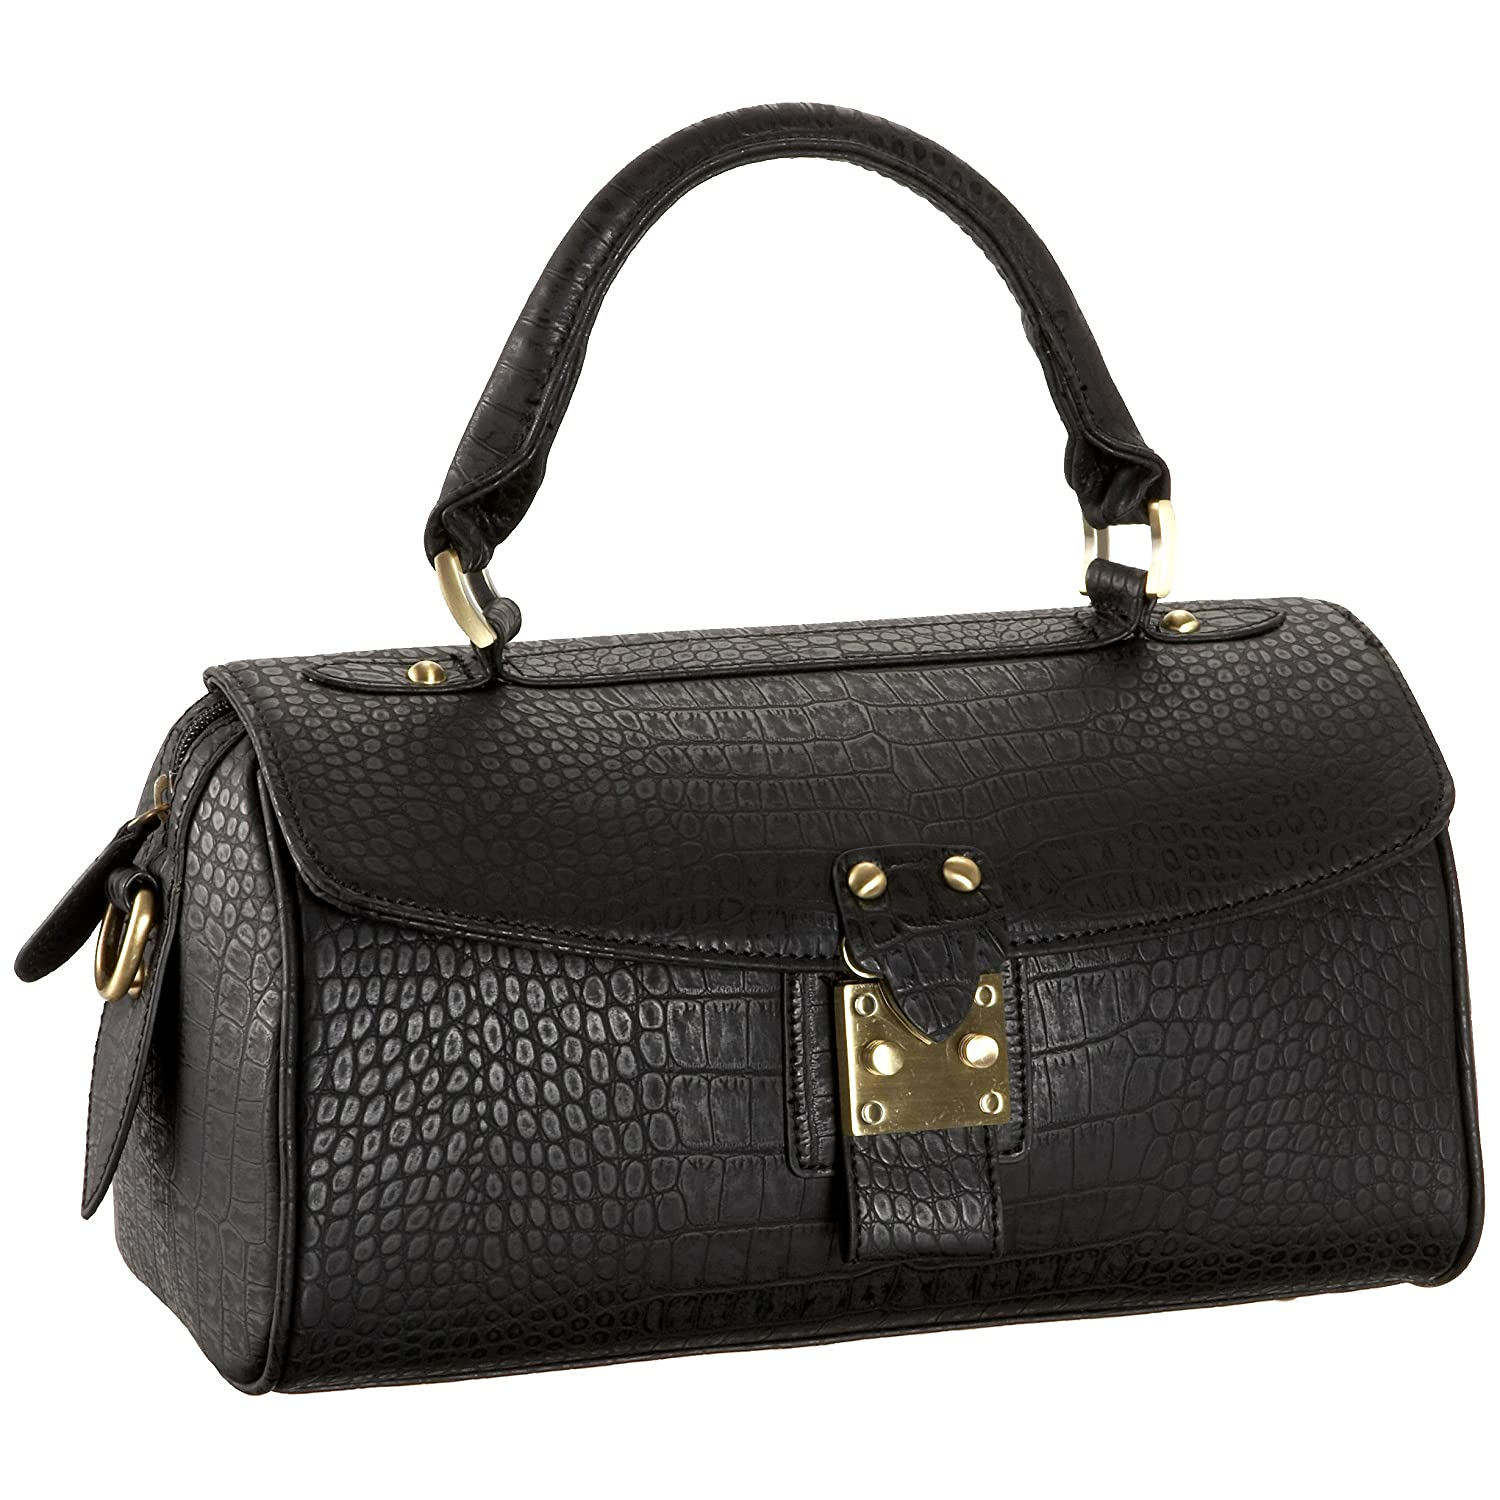 High Fashion Handbags - Croc-Embossed Satchel